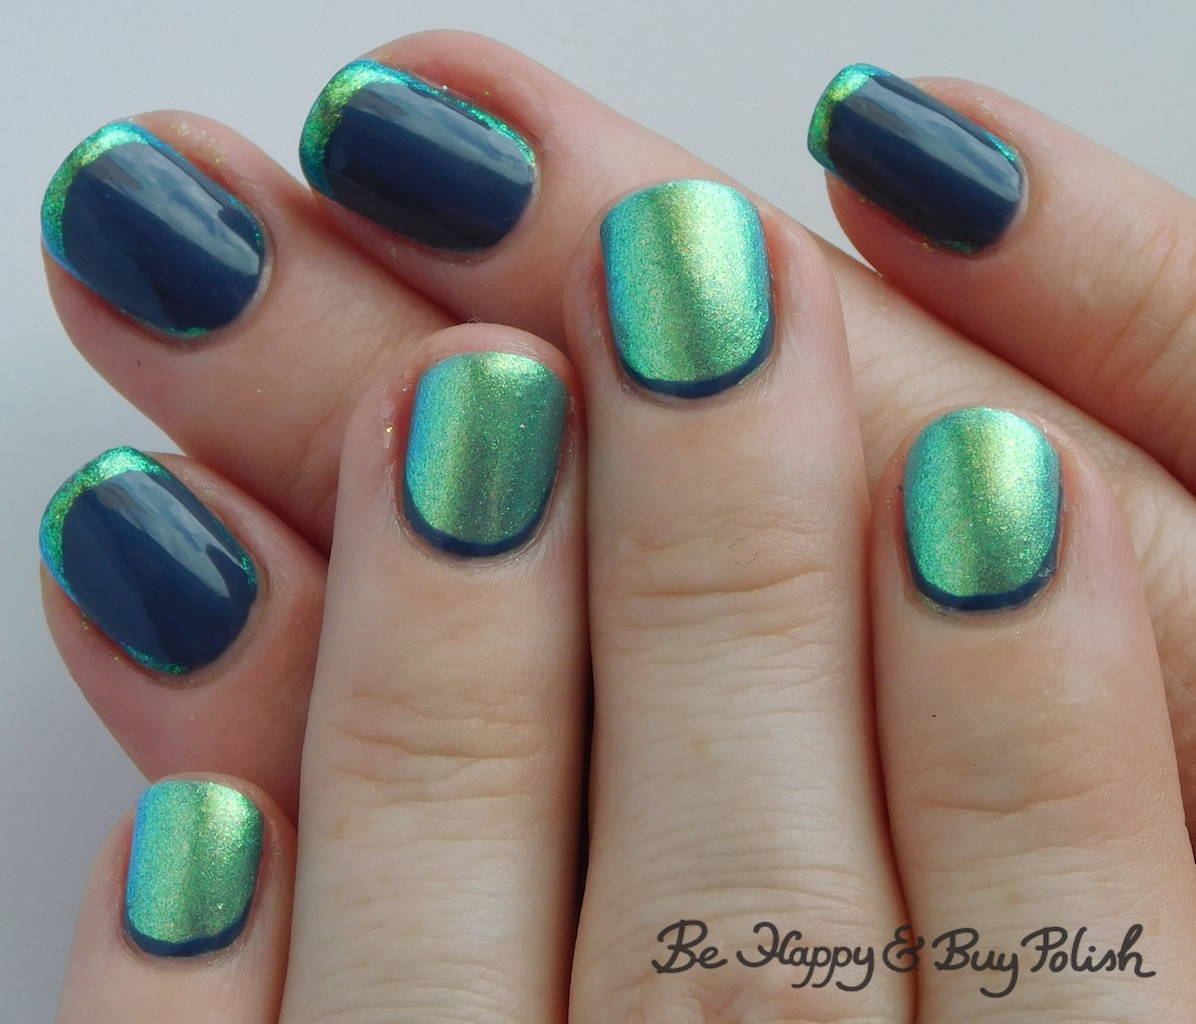 La Looks Nail Polish: Opposing Colors French Manicure With P.O.P Polish And L.A